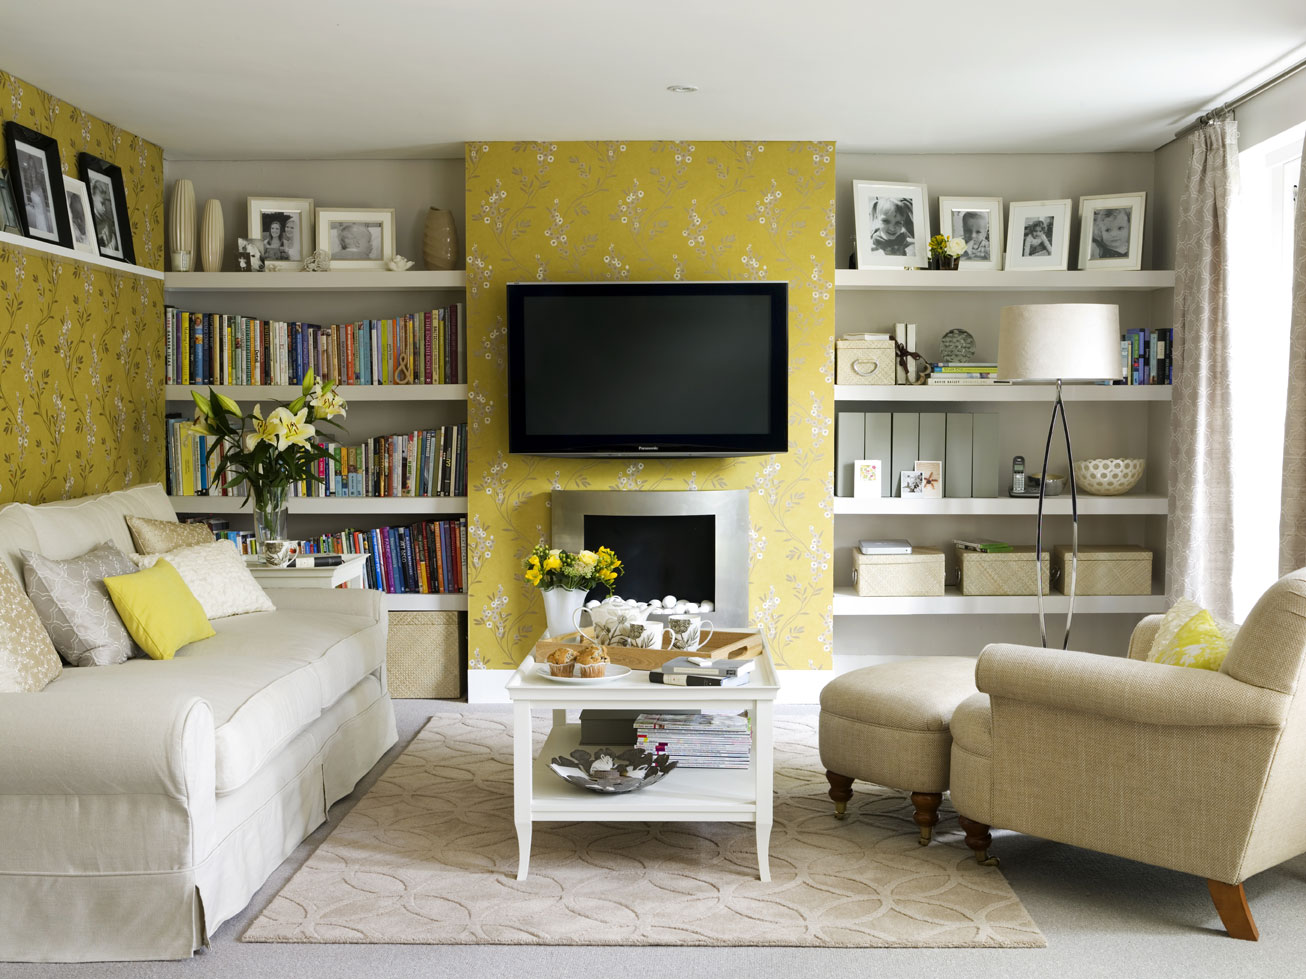 Living Room Pics Yellow Room Interior Inspiration 55 Rooms For Your Viewing Pleasure